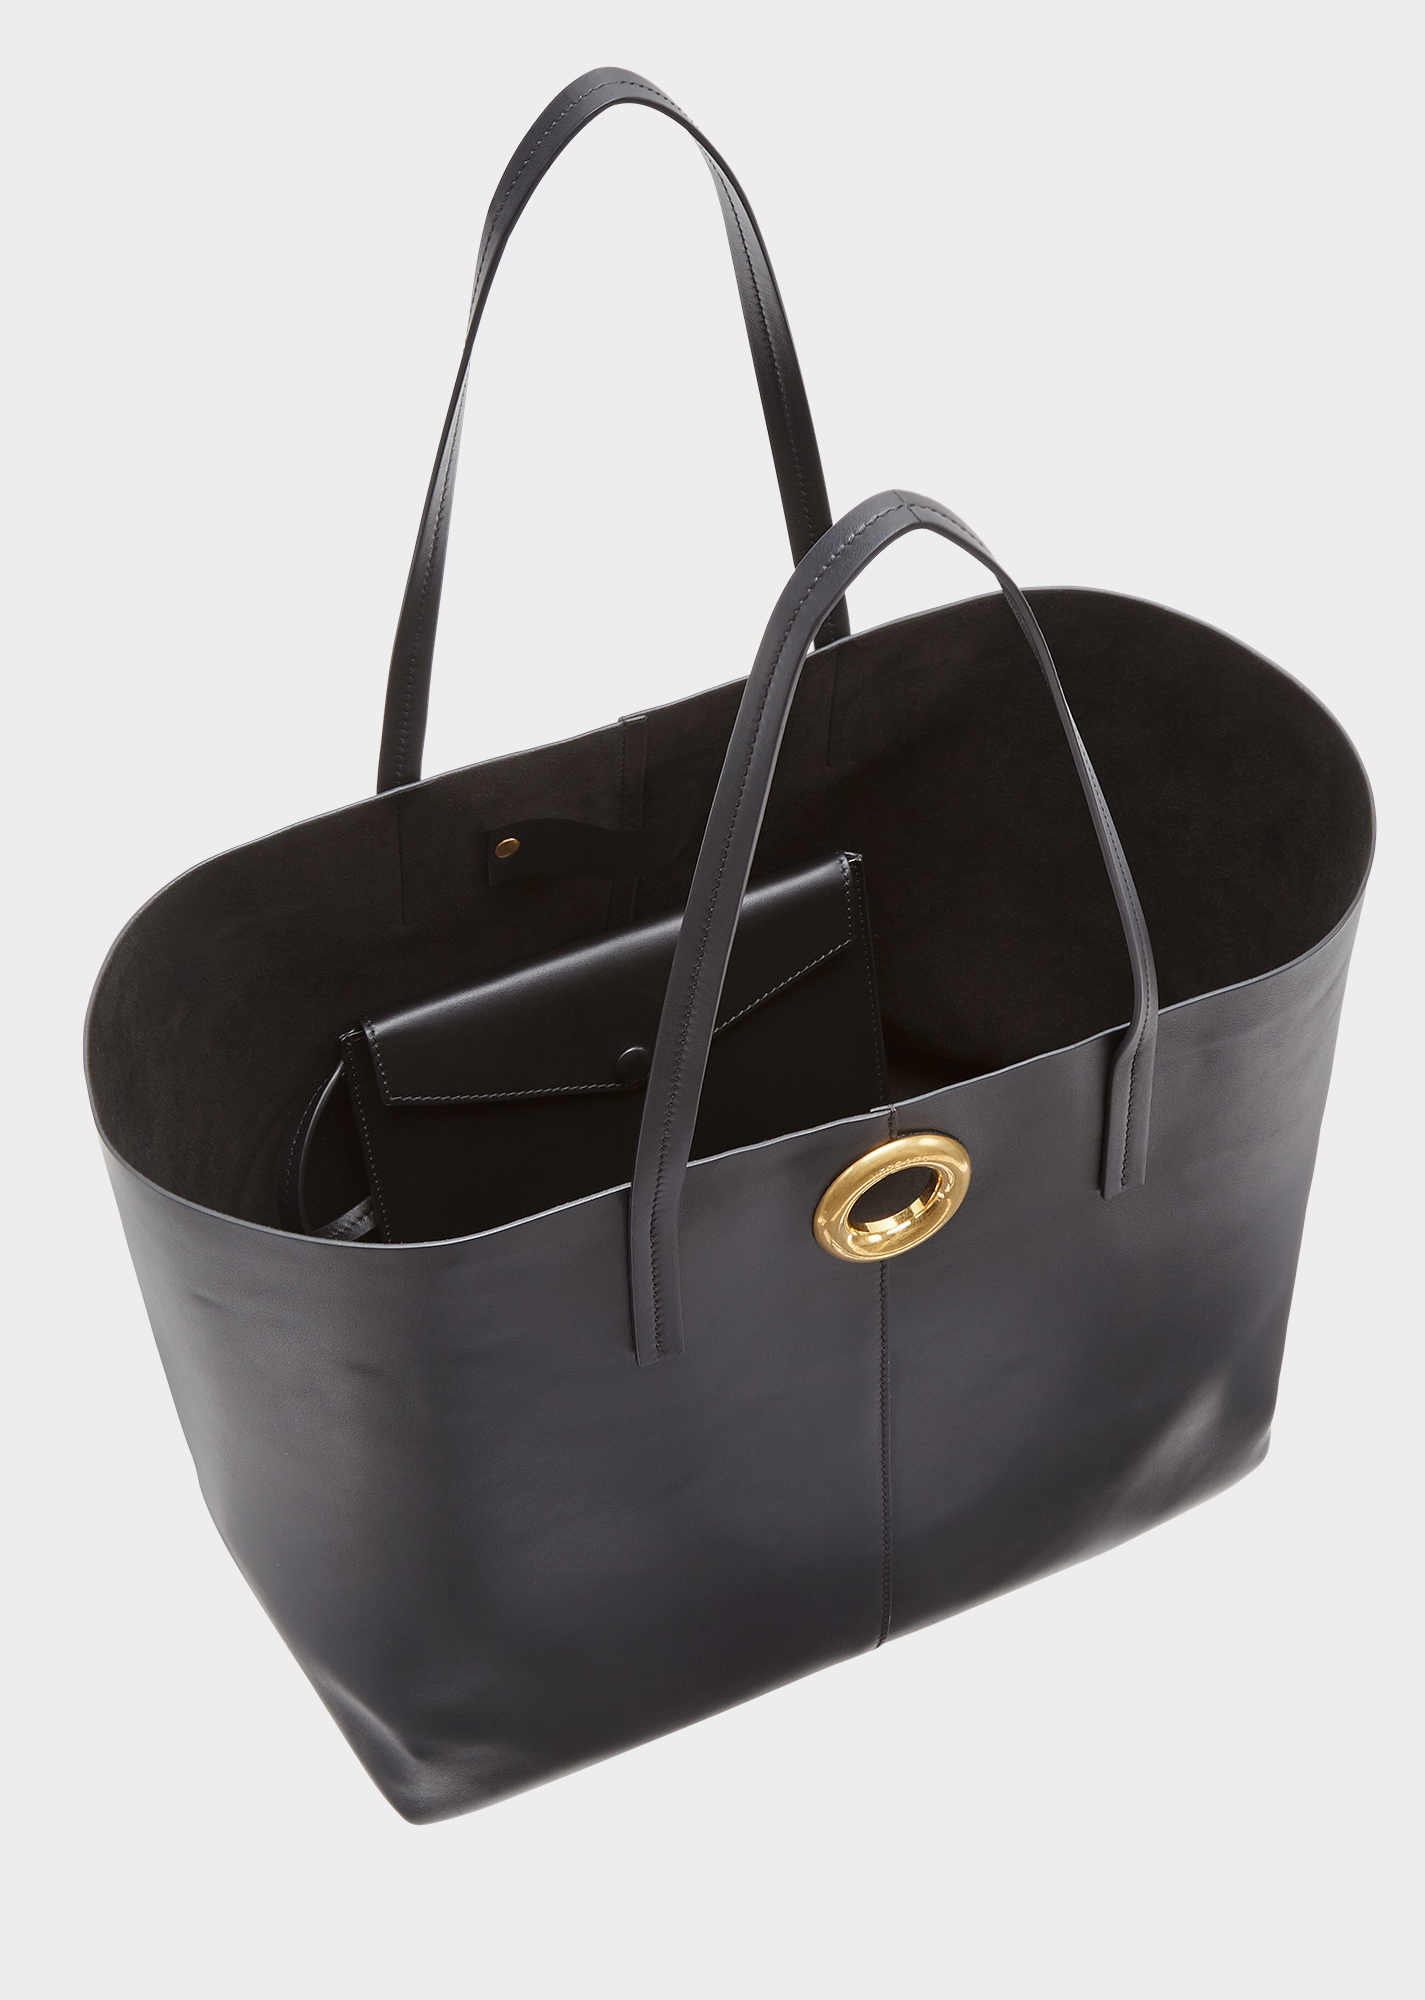 Versace Calf Leather Shoulder Tote Bag With Barocco Scarf In Black Multi  Tribute Gold 13d50c1587a3b